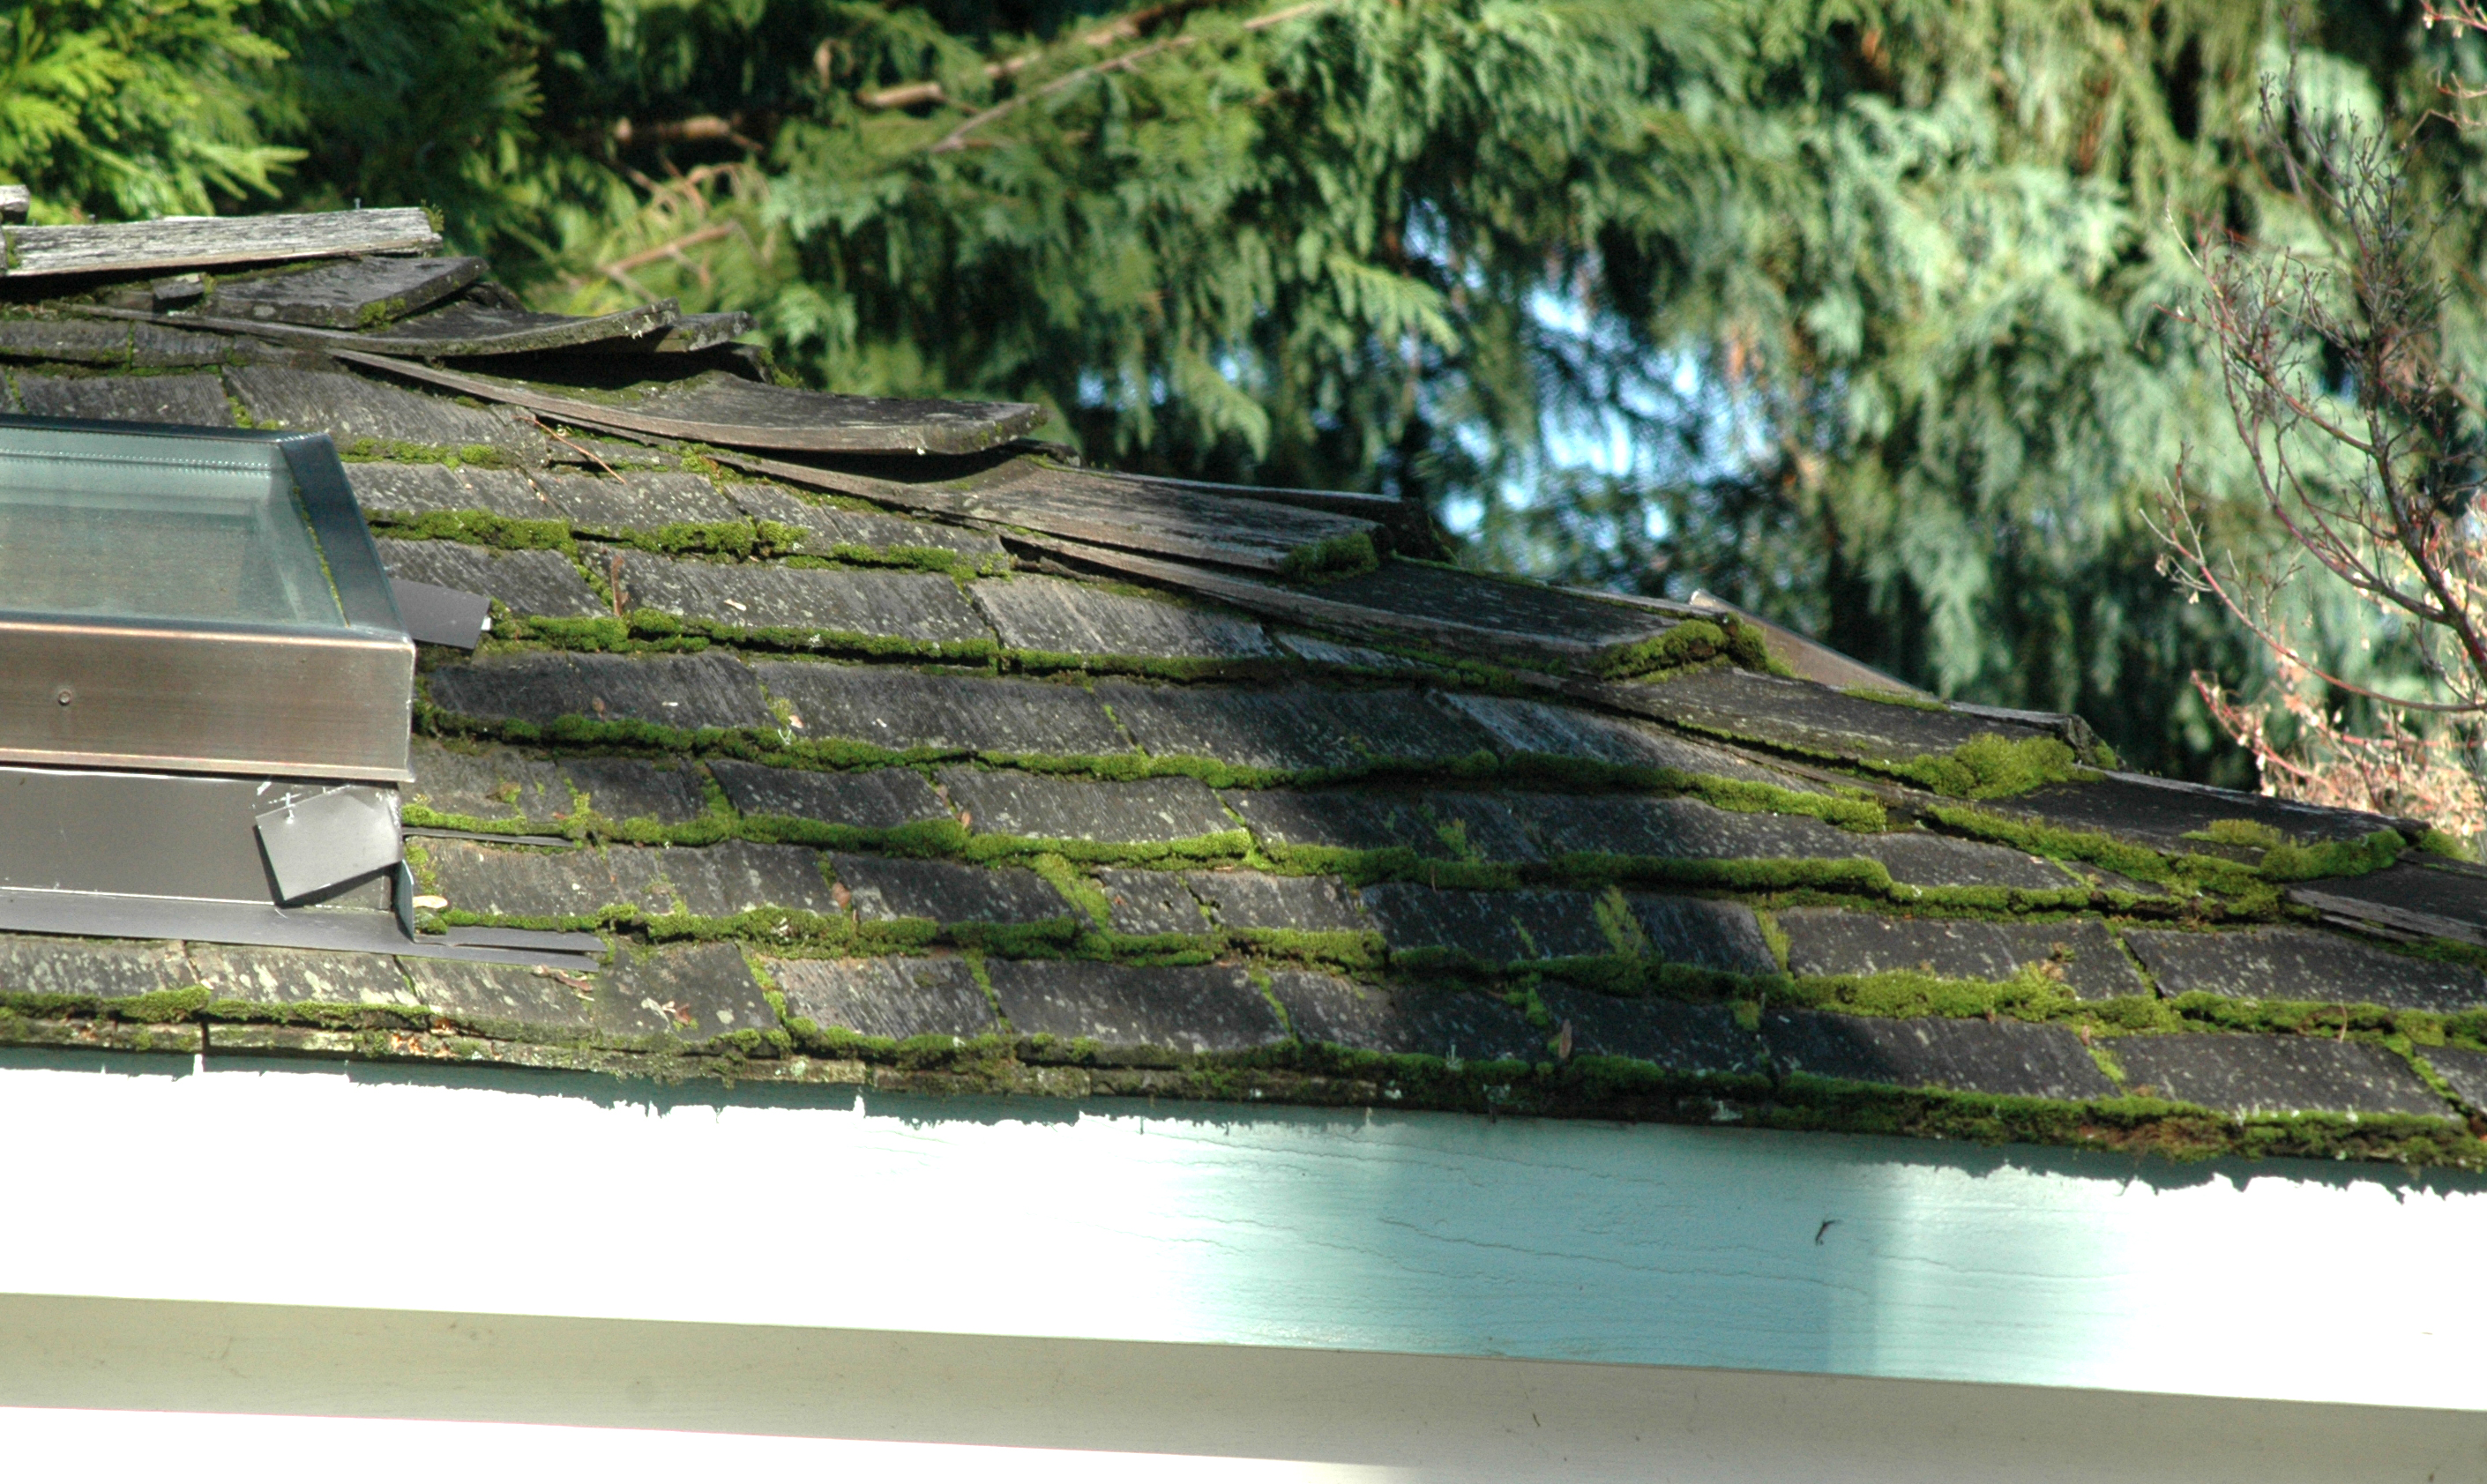 Moss buildup on the thicker cut ends of shingles